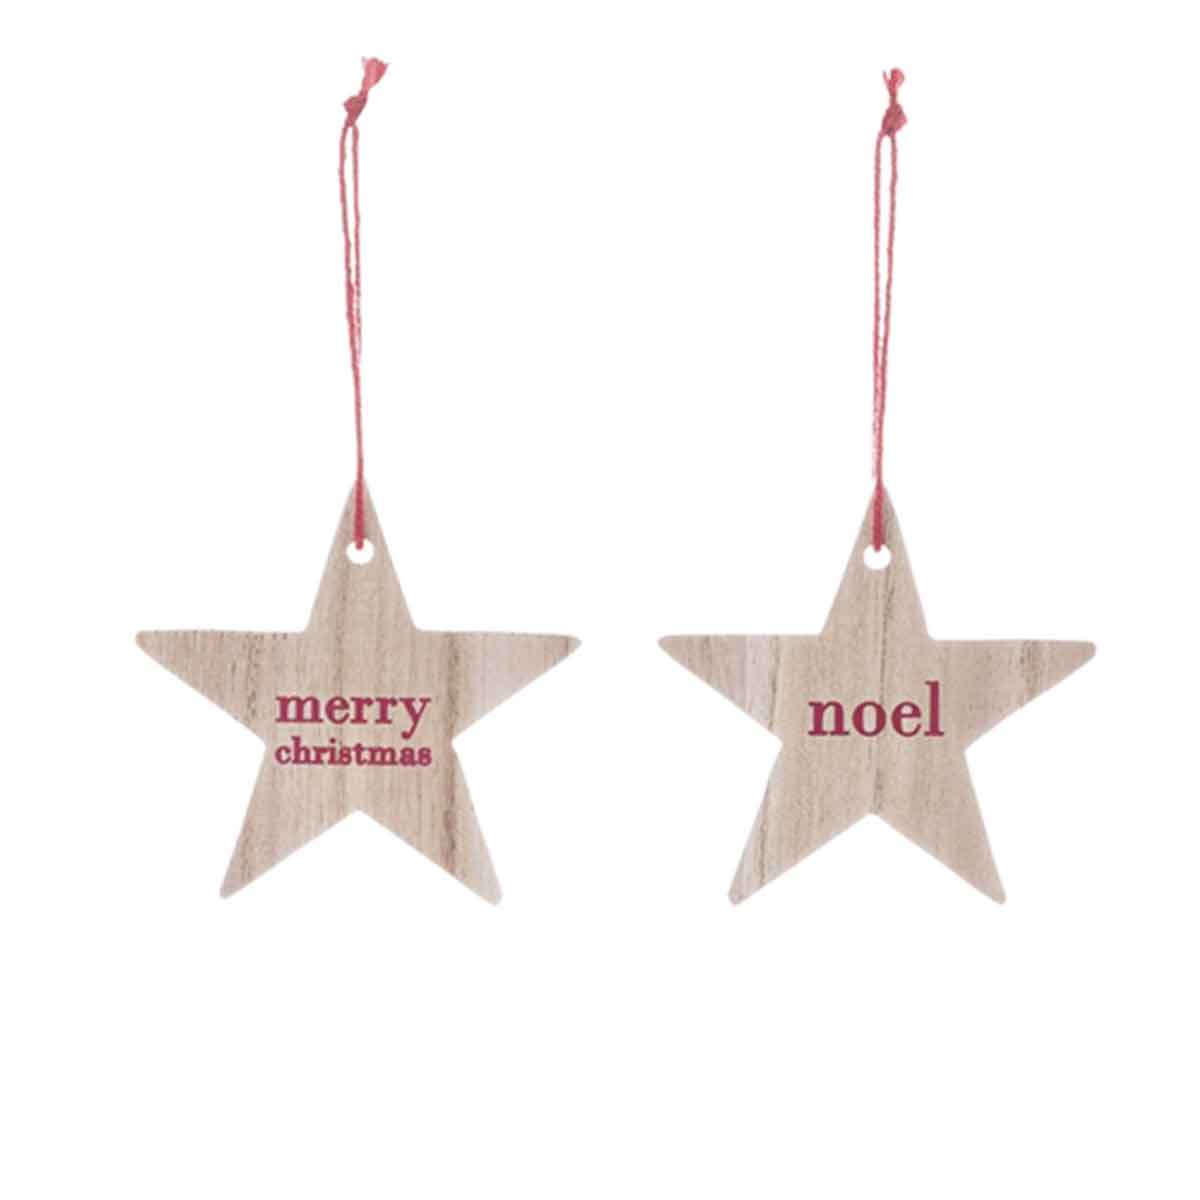 Toiles de no l en bois avec inscription noel et merry christmas - Chemin de table de noel ...